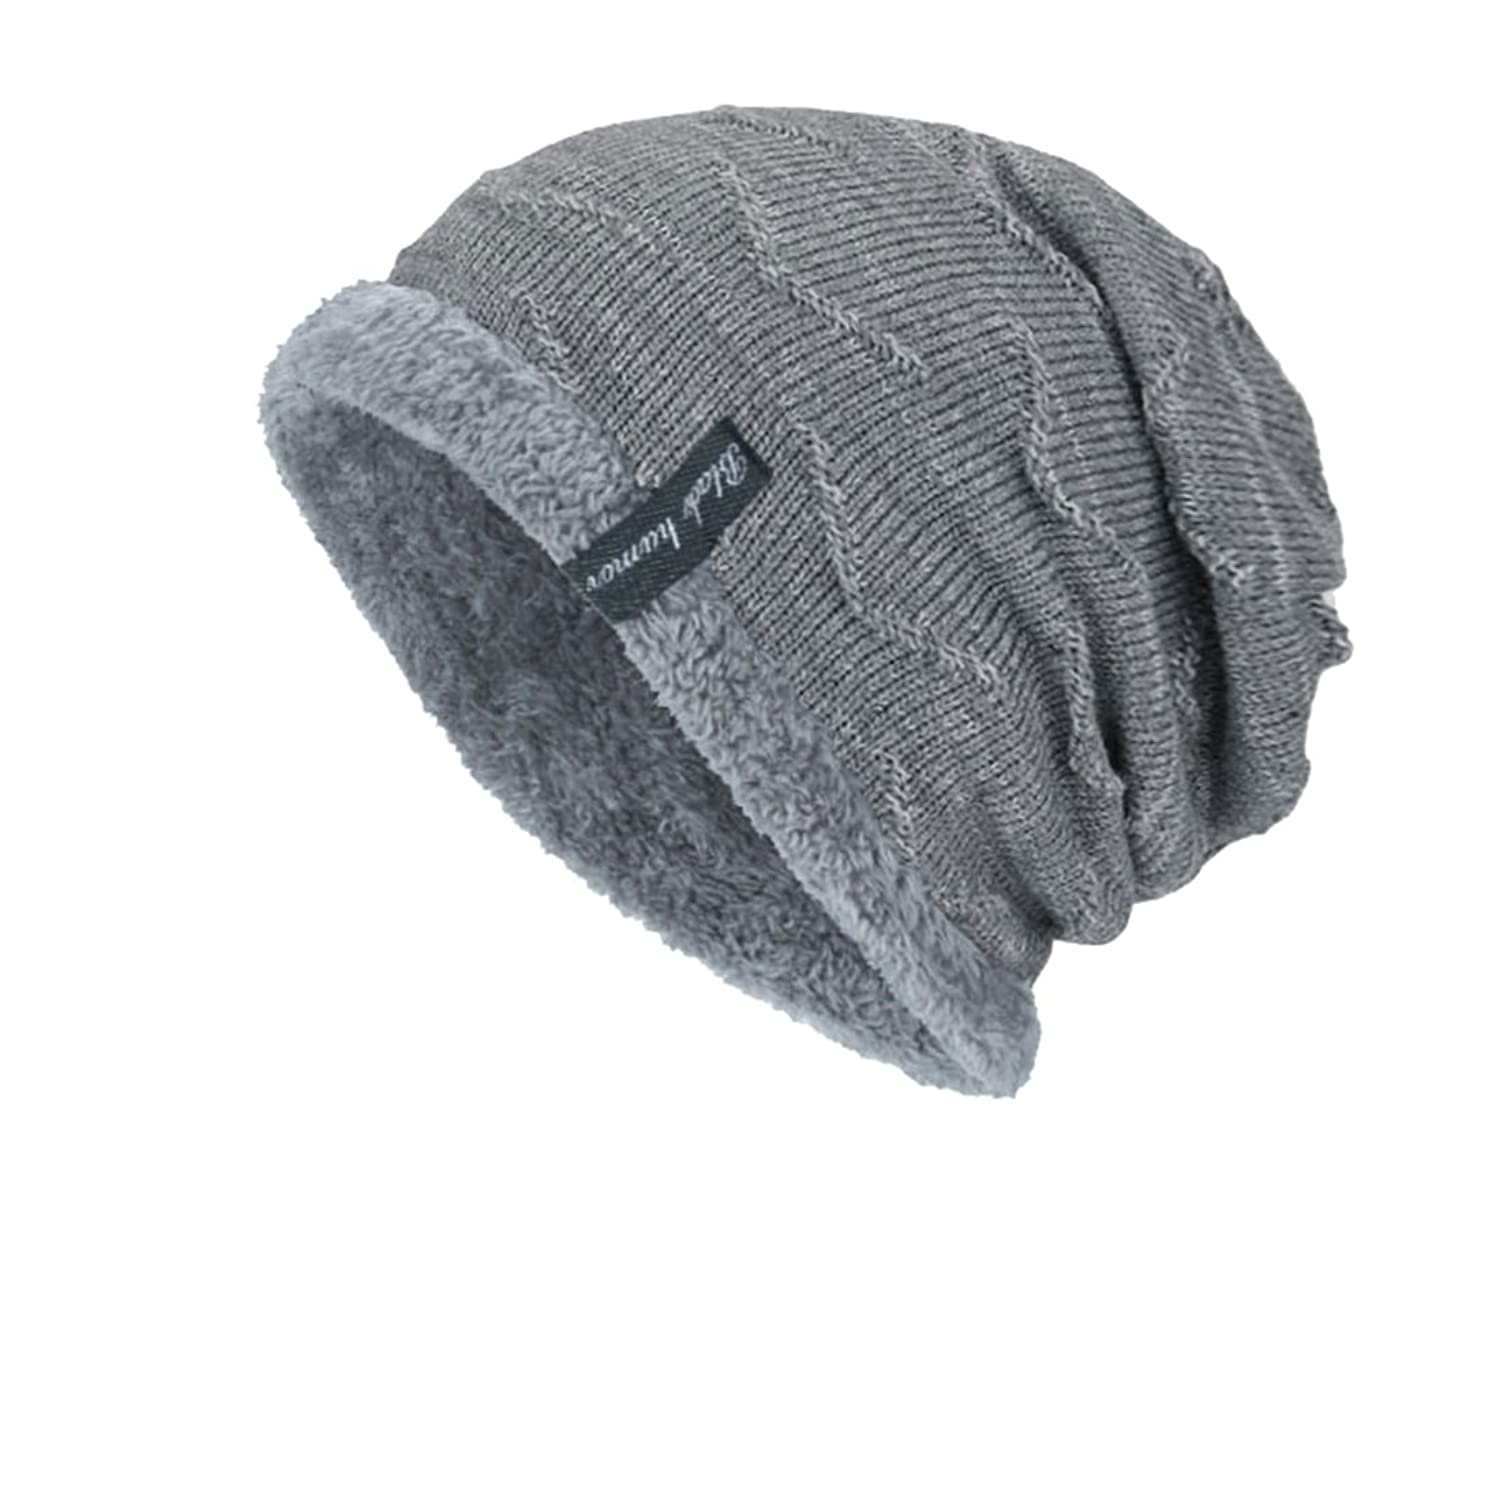 8efb14a964667 DD UP Winter Beanie Hat Men Warm Knit Thick Skull Cap With Soft Fleece  Lining  Amazon.co.uk  Clothing